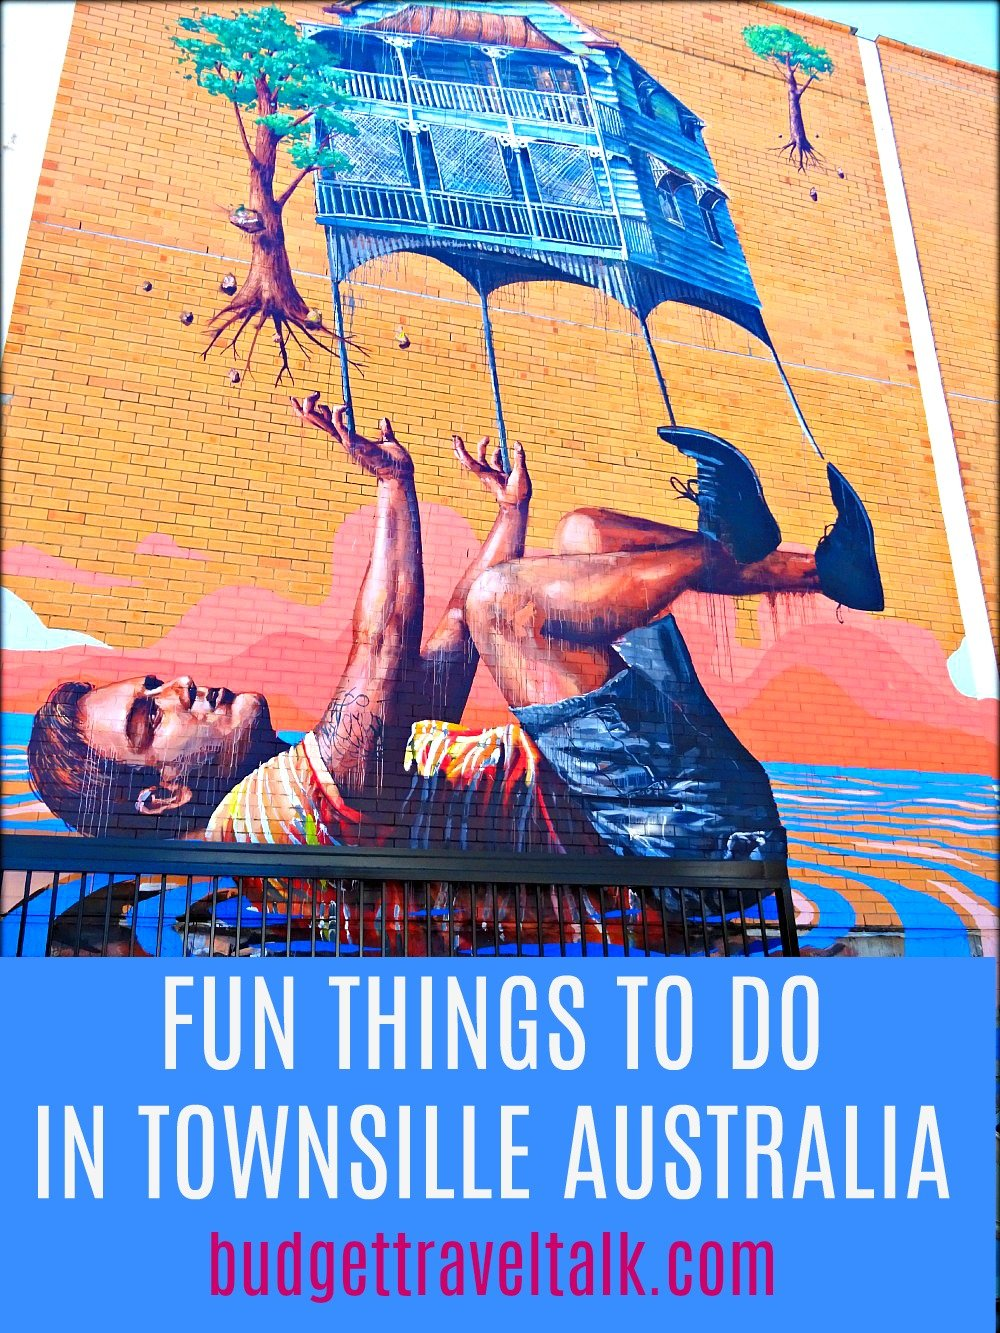 City Lane Townsville is one of the fun things to do in Townsville Australia